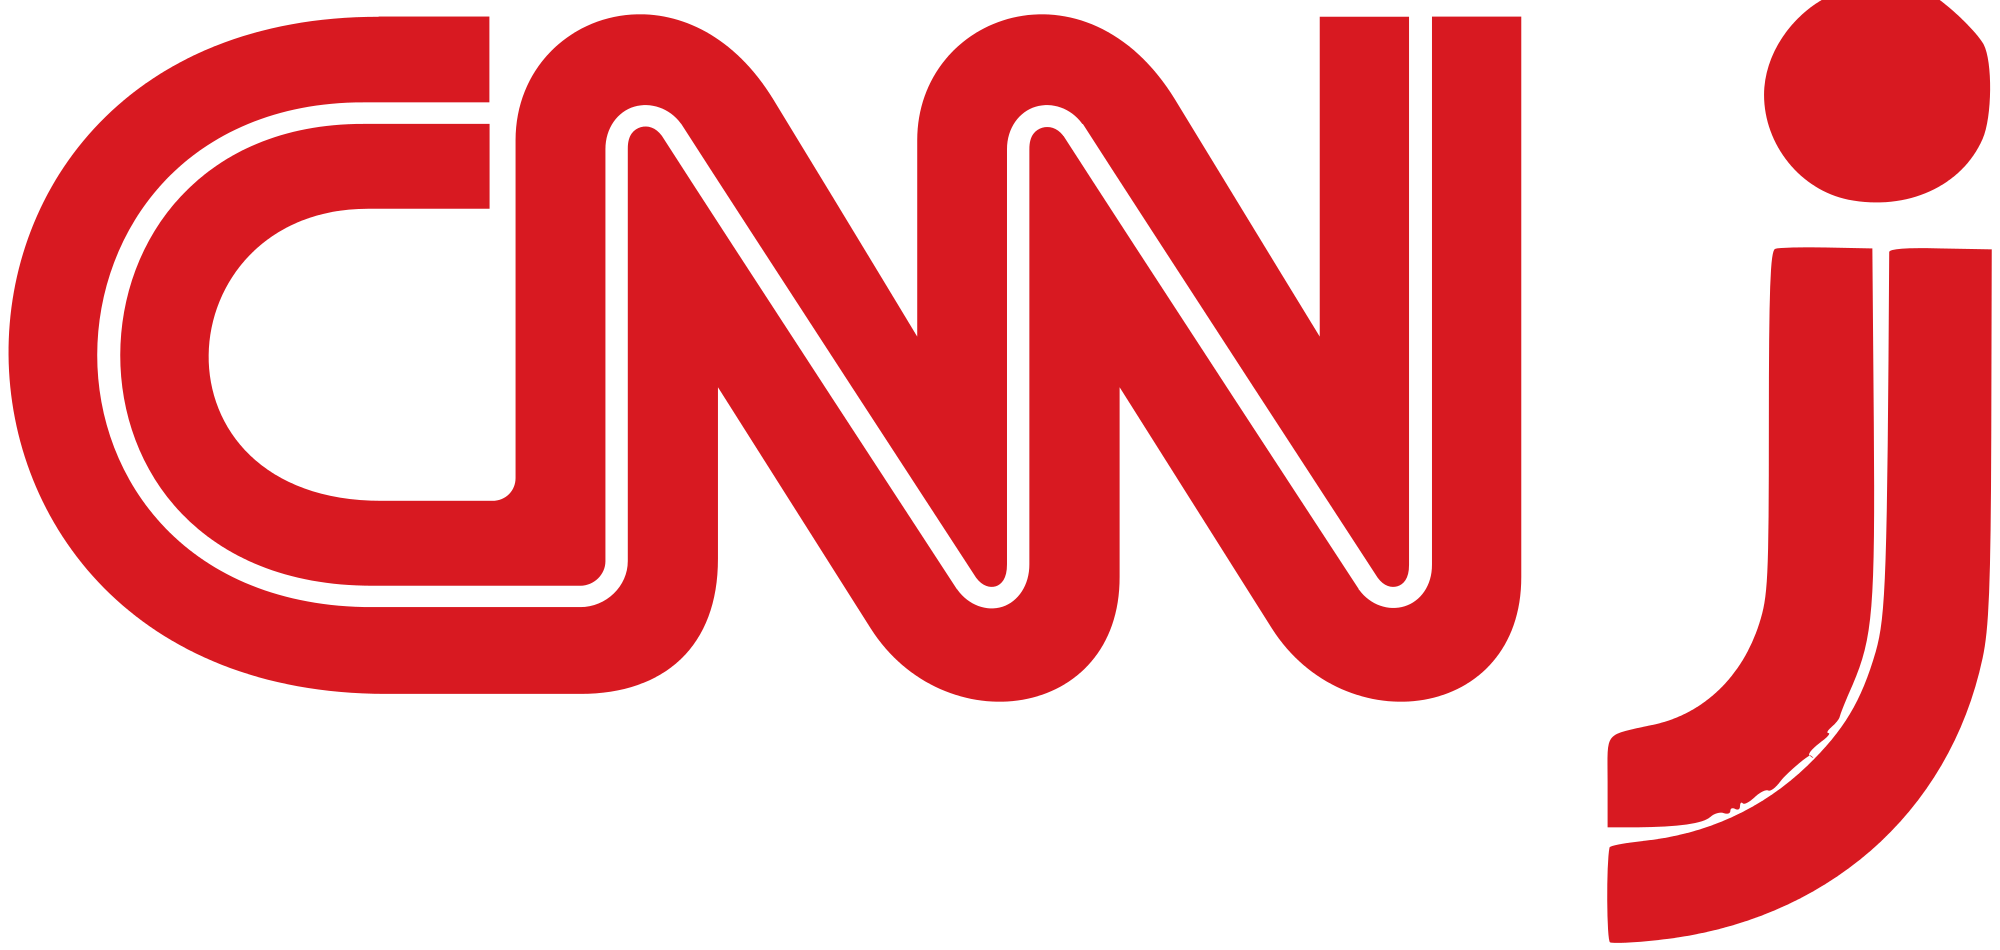 CNN Logo - File:CNN j logo.svg - Wikimedia Commons